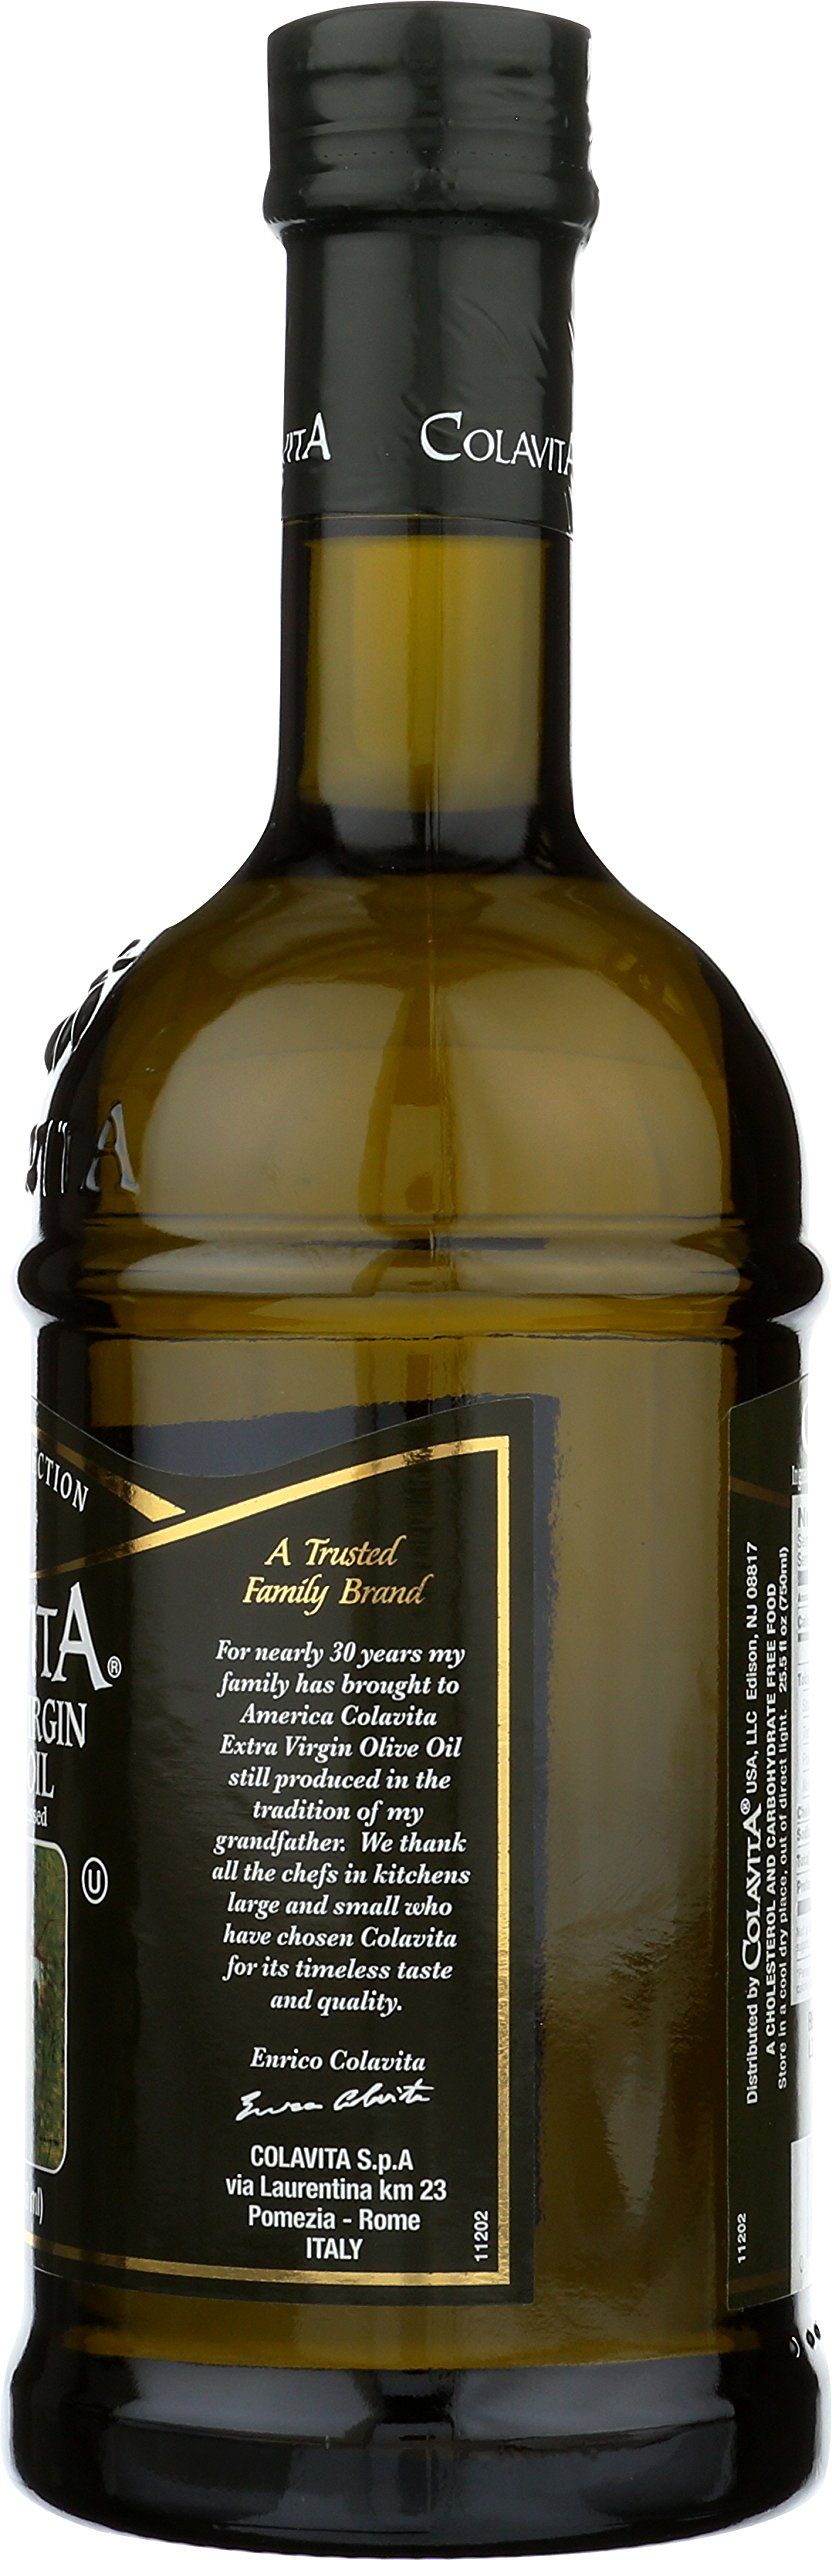 Colavita Extra Virgin Olive Oil Special, 25.5 Ounce (Pack of 2) by Colavita (Image #11)